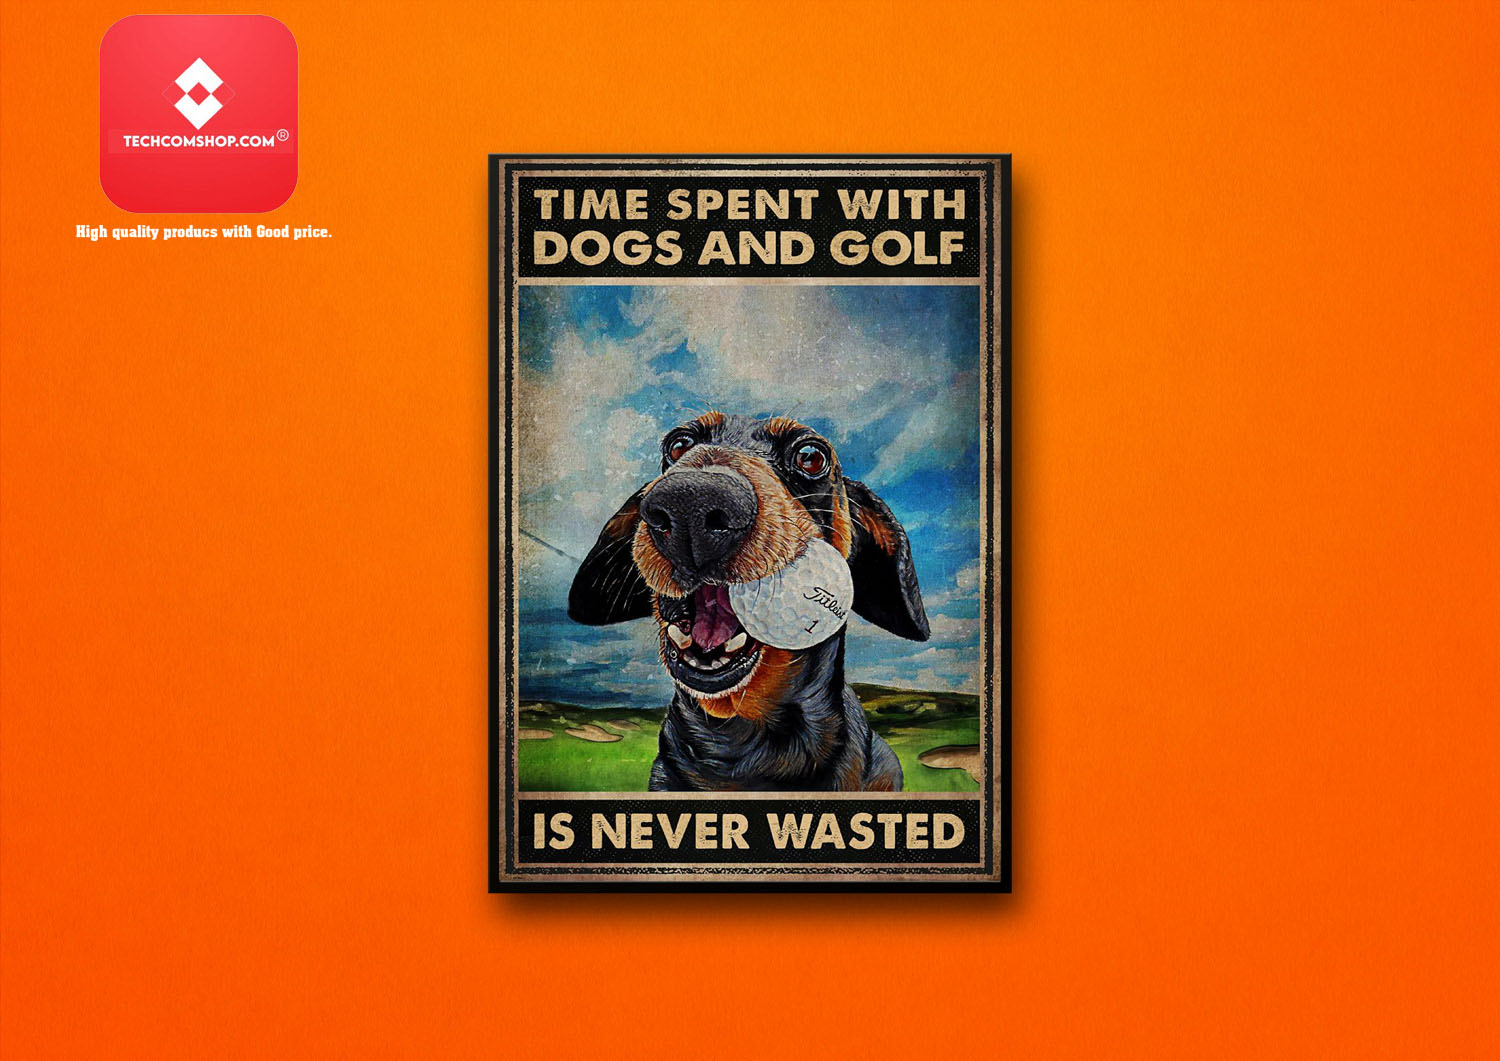 Time spent with dogs and golf is never wasted poster 8